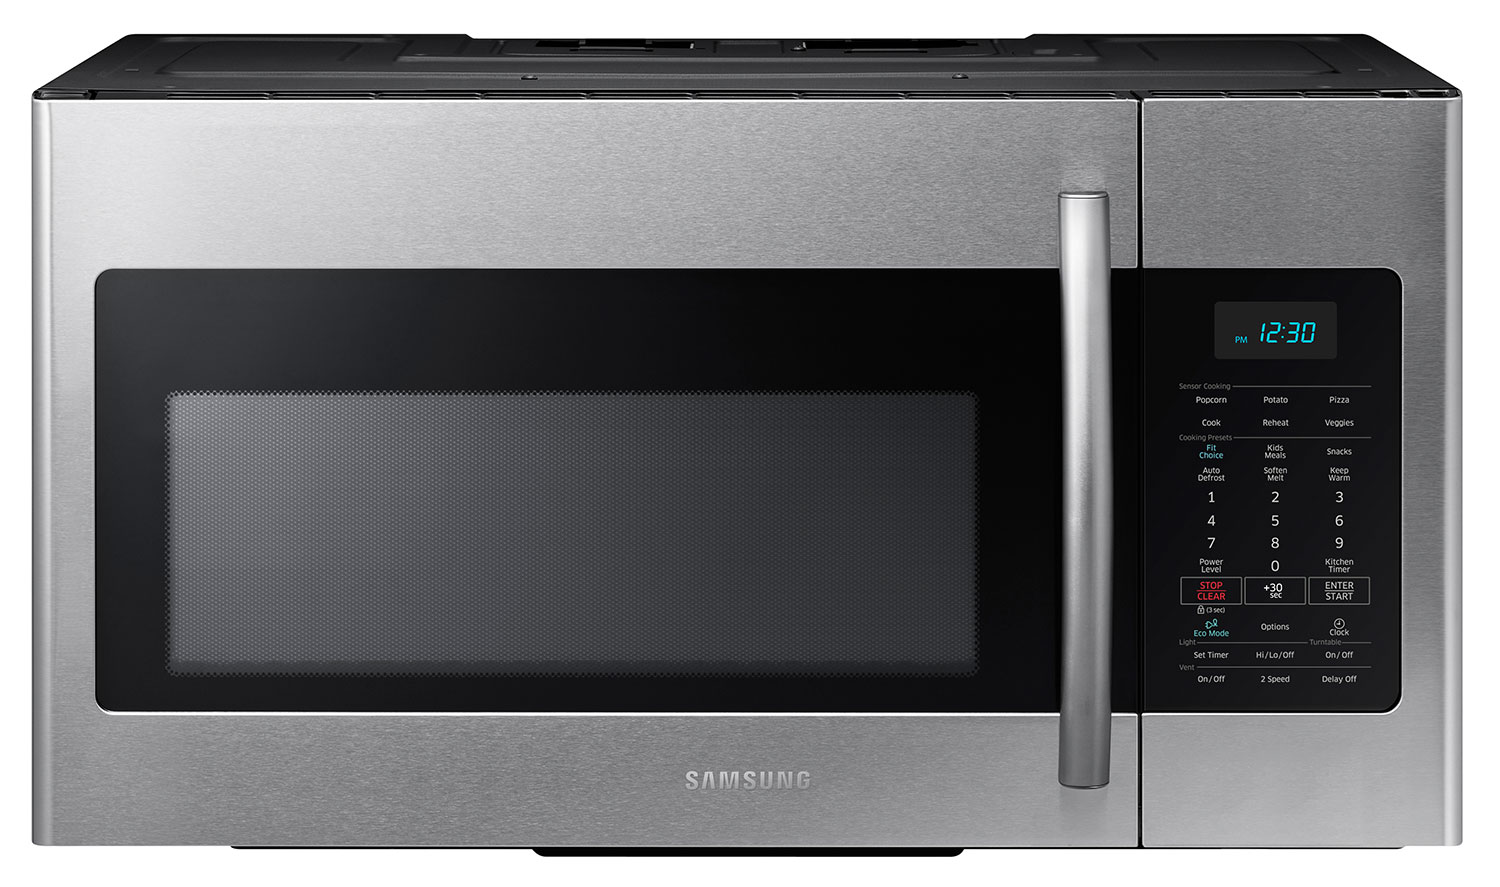 Samsung Stainless Steel Over-the-Range Microwave (1.7 Cu. Ft.) - ME17H703SHS